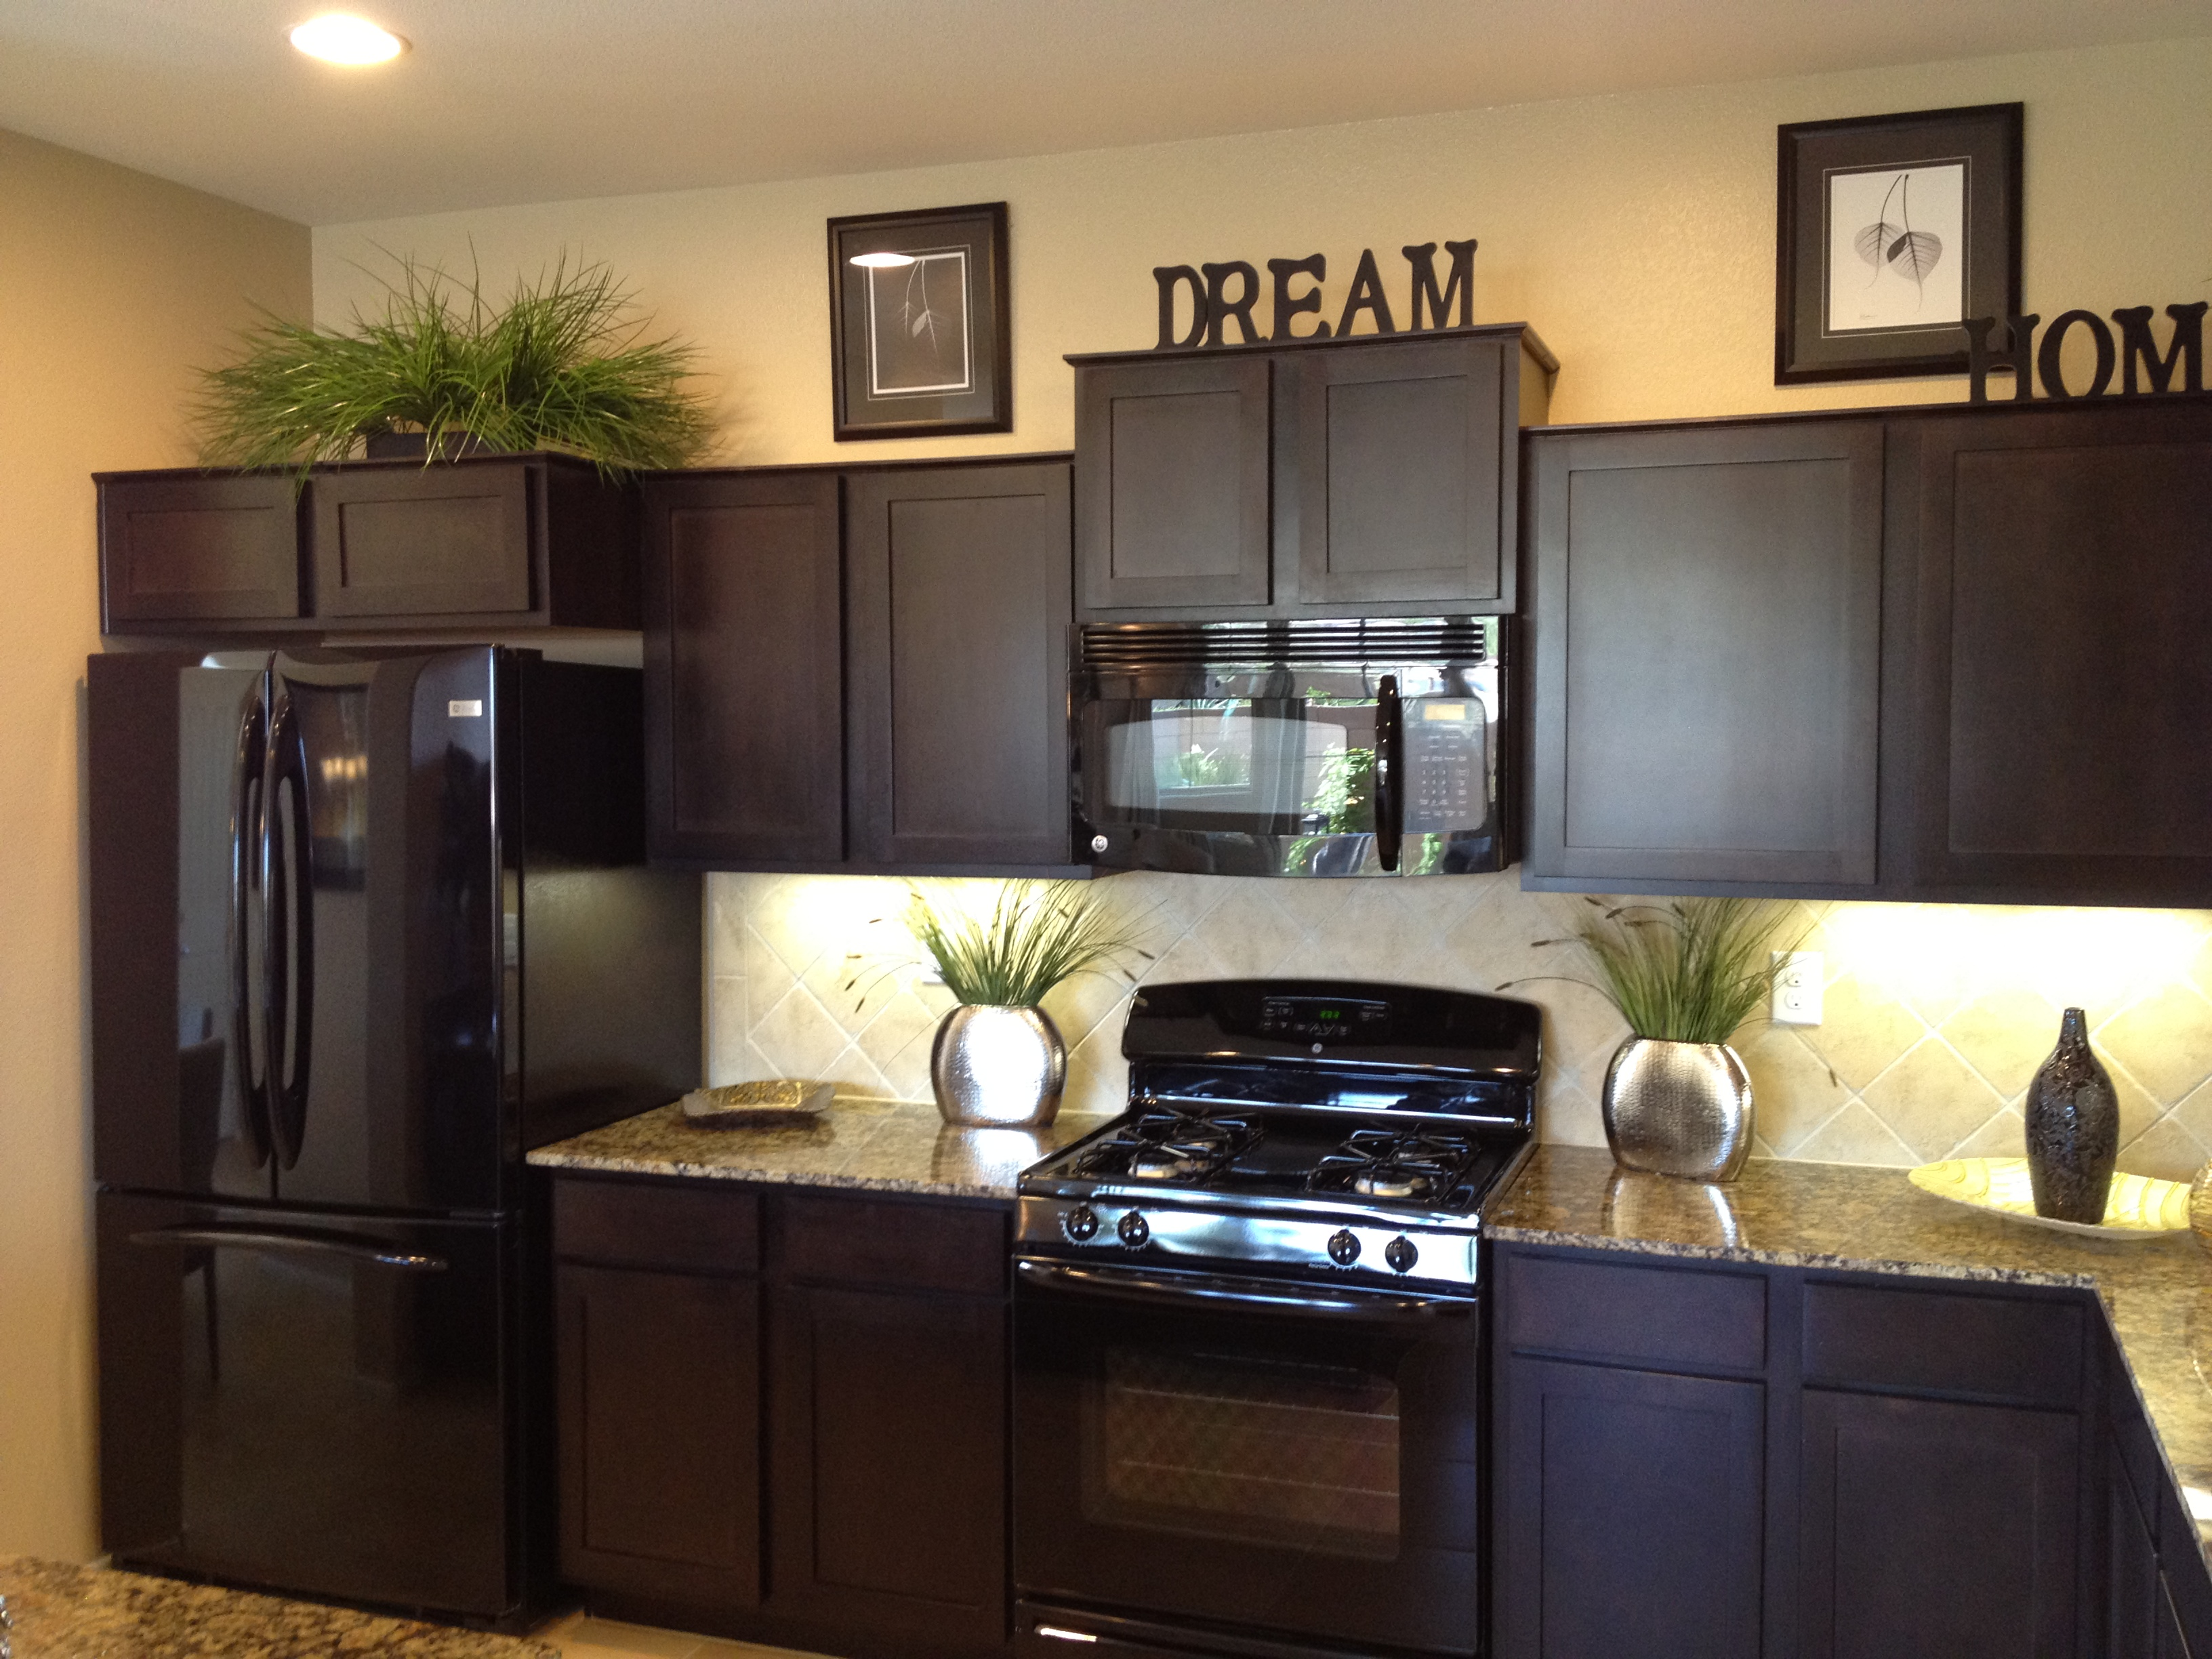 Elegant Kitchen Cabinets Las Vegas Moutain 39s Edge New Homes Searching Luxury Homes In Las